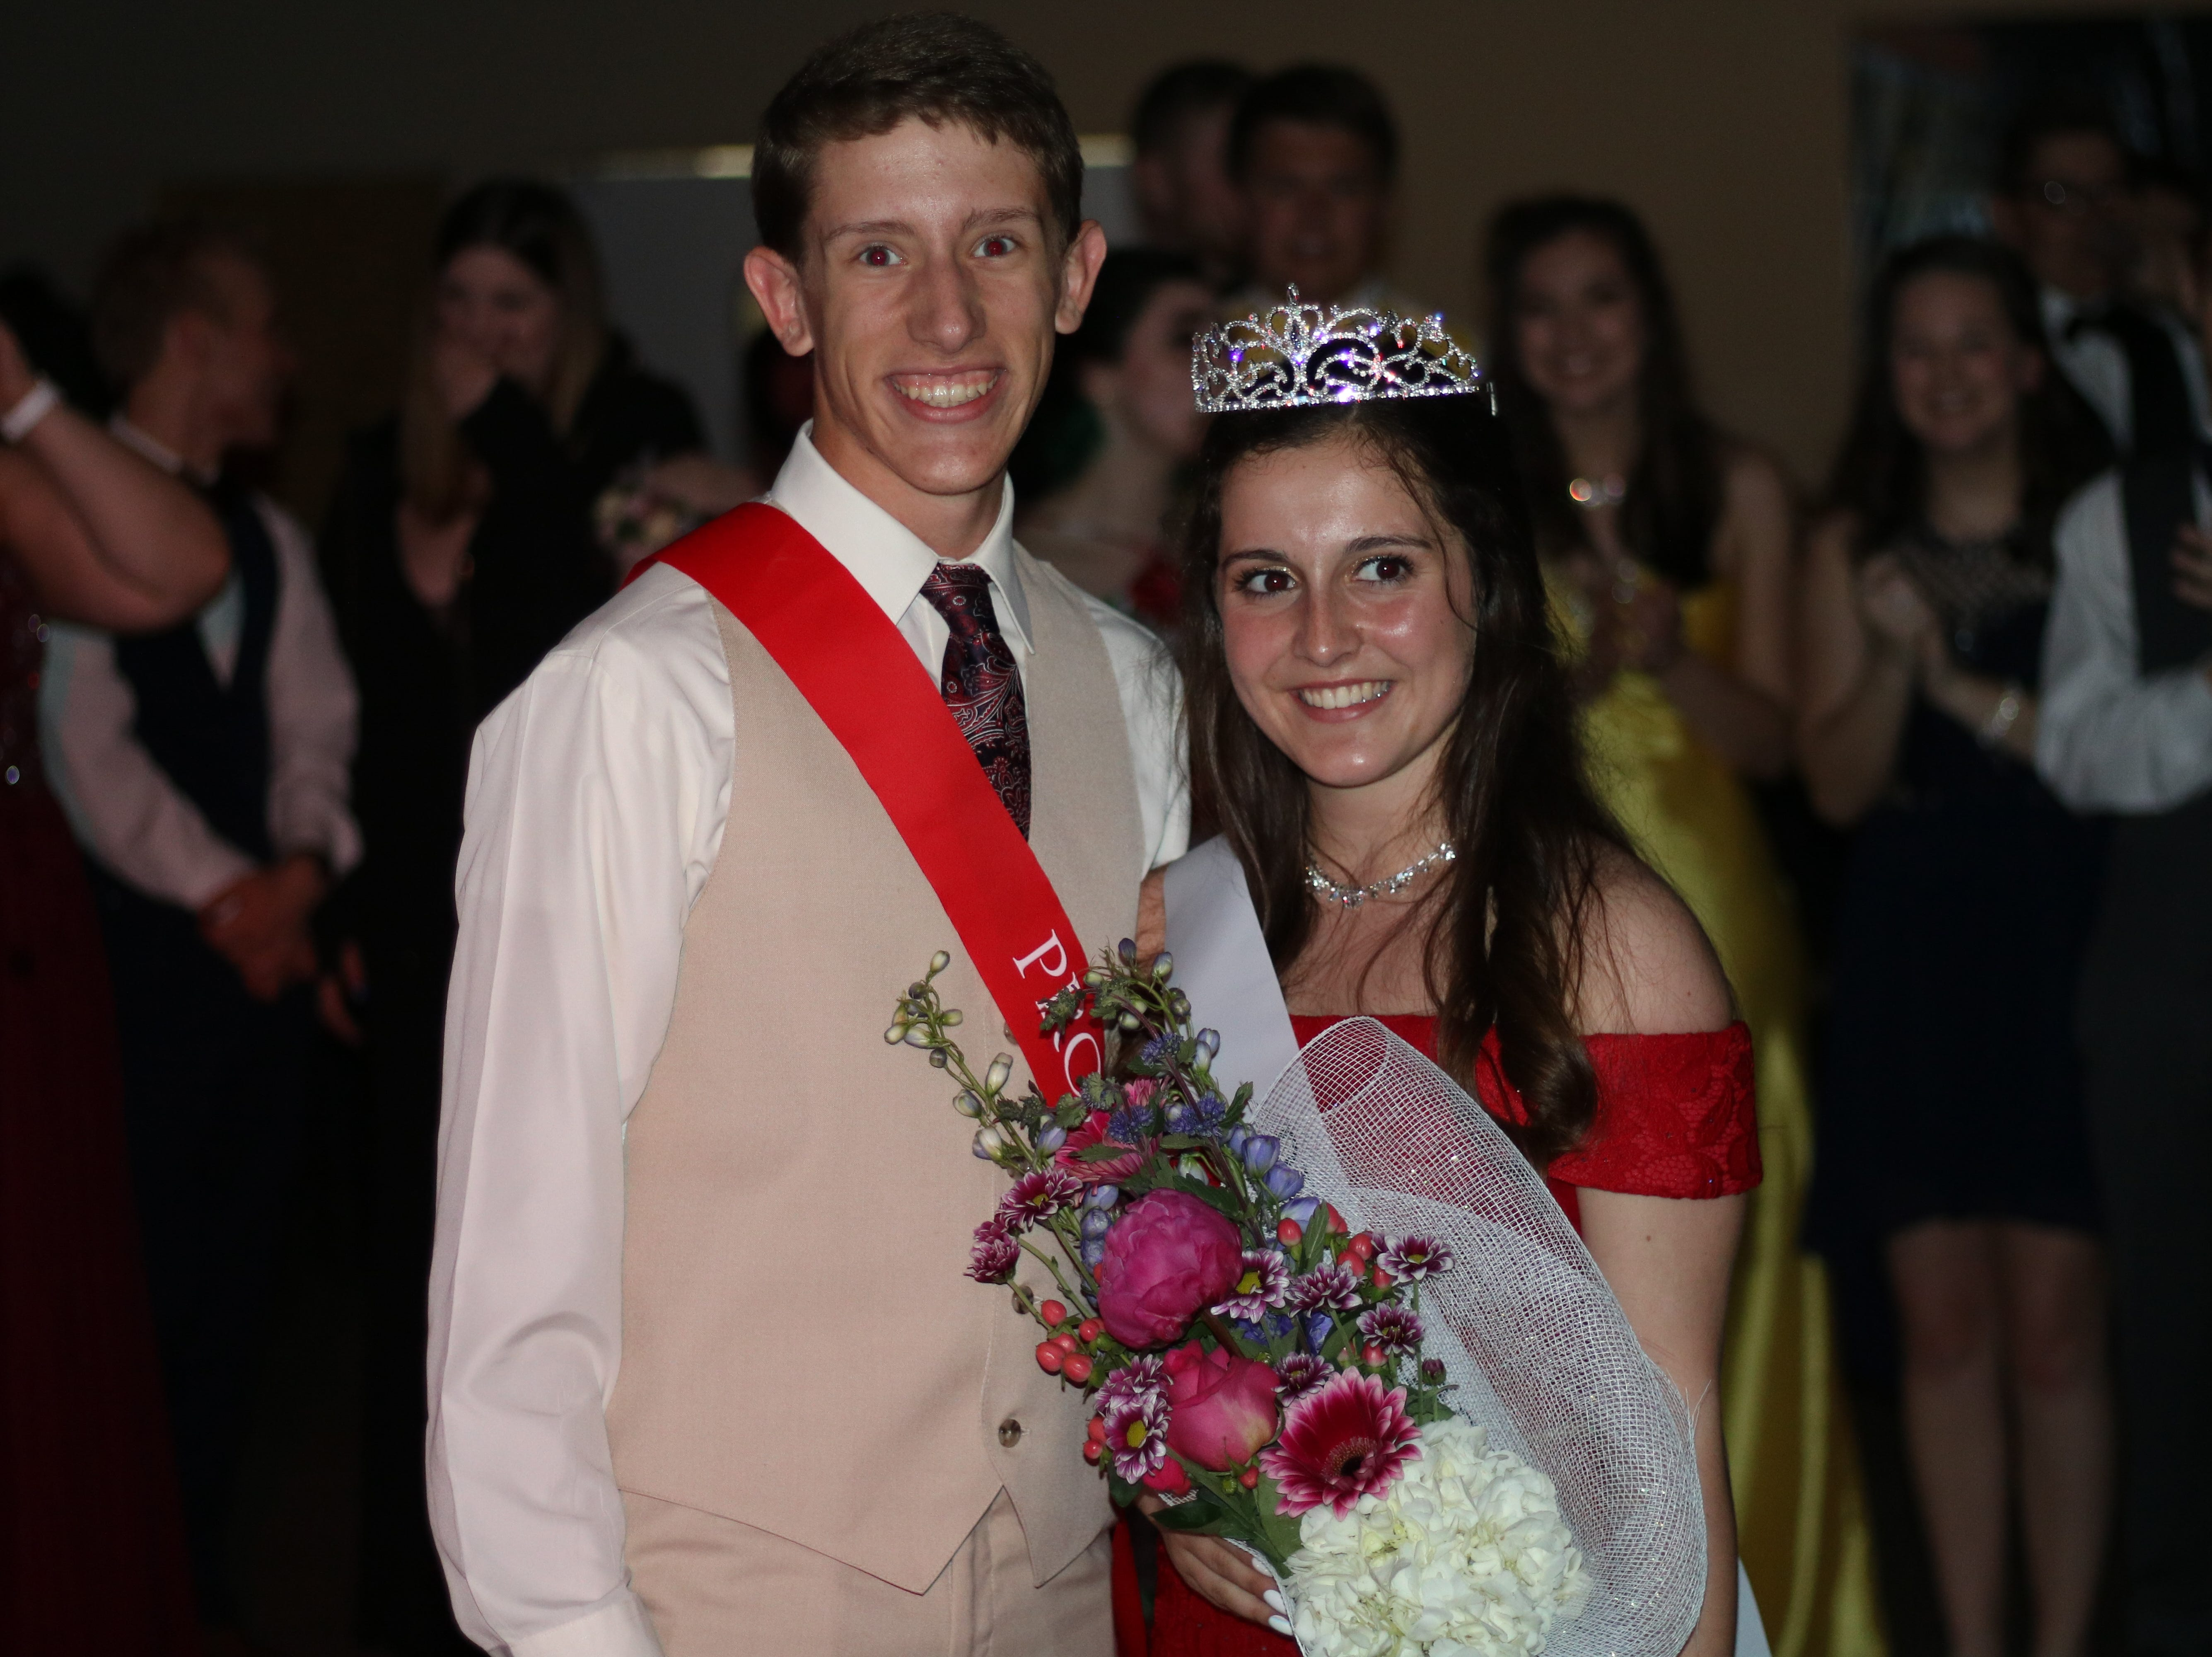 Pleasant's Zach Abraham and Bridgette Murphy pose after the prince/princess announcement at All Occasions in Waldo on Saturday May 4, 2019.